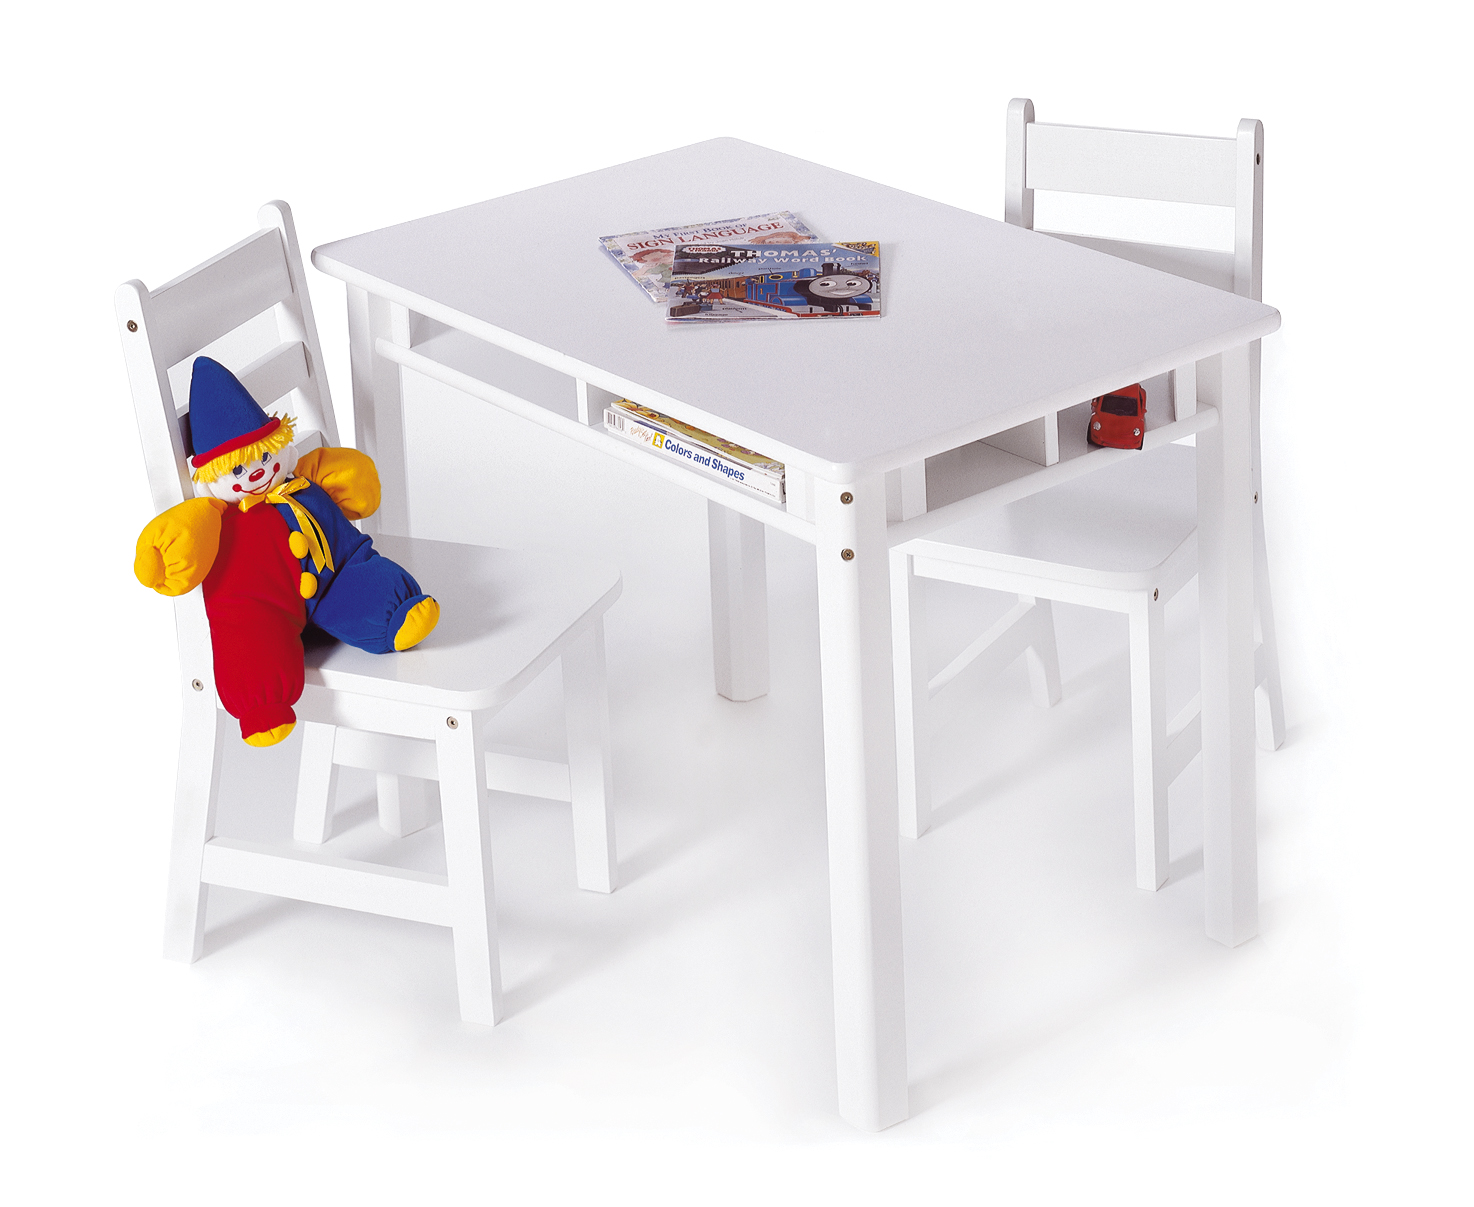 Child\u0027s Rectangular Table with Shelves \u0026 2 Chairs White  sc 1 st  Lipper International & Table \u0026 Chair Sets for Children | Kids Collection | Lipper International